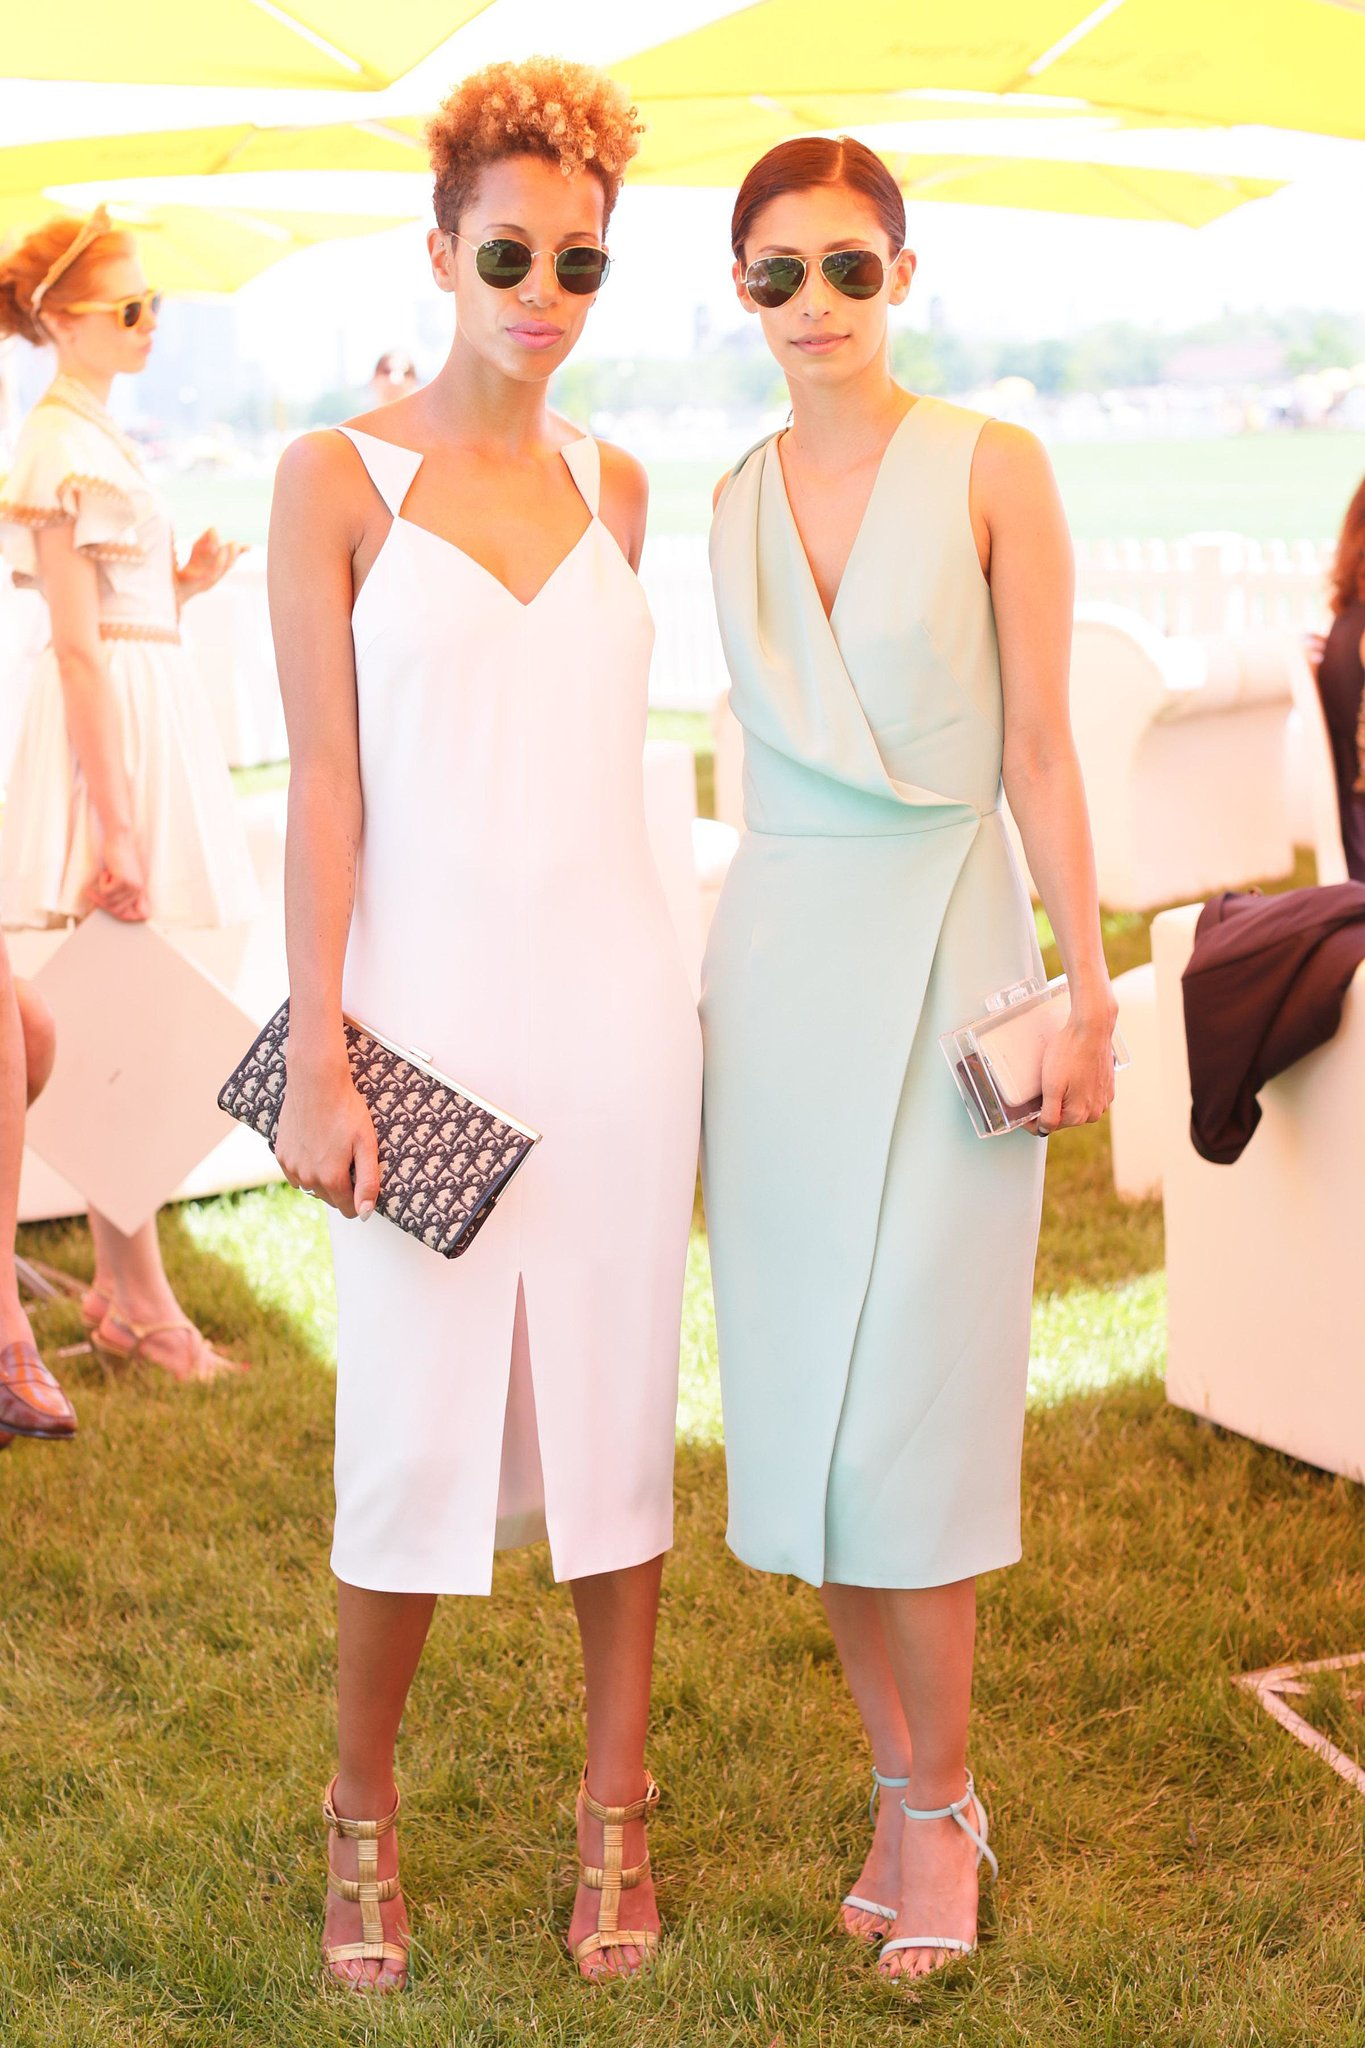 Cushnie et Ochs designer duo Carly Cushnie and Michelle Ochs at the sixth annual Veuve Clicquot Polo Classic in Jersey City, NJ. Source: David X Pruttin